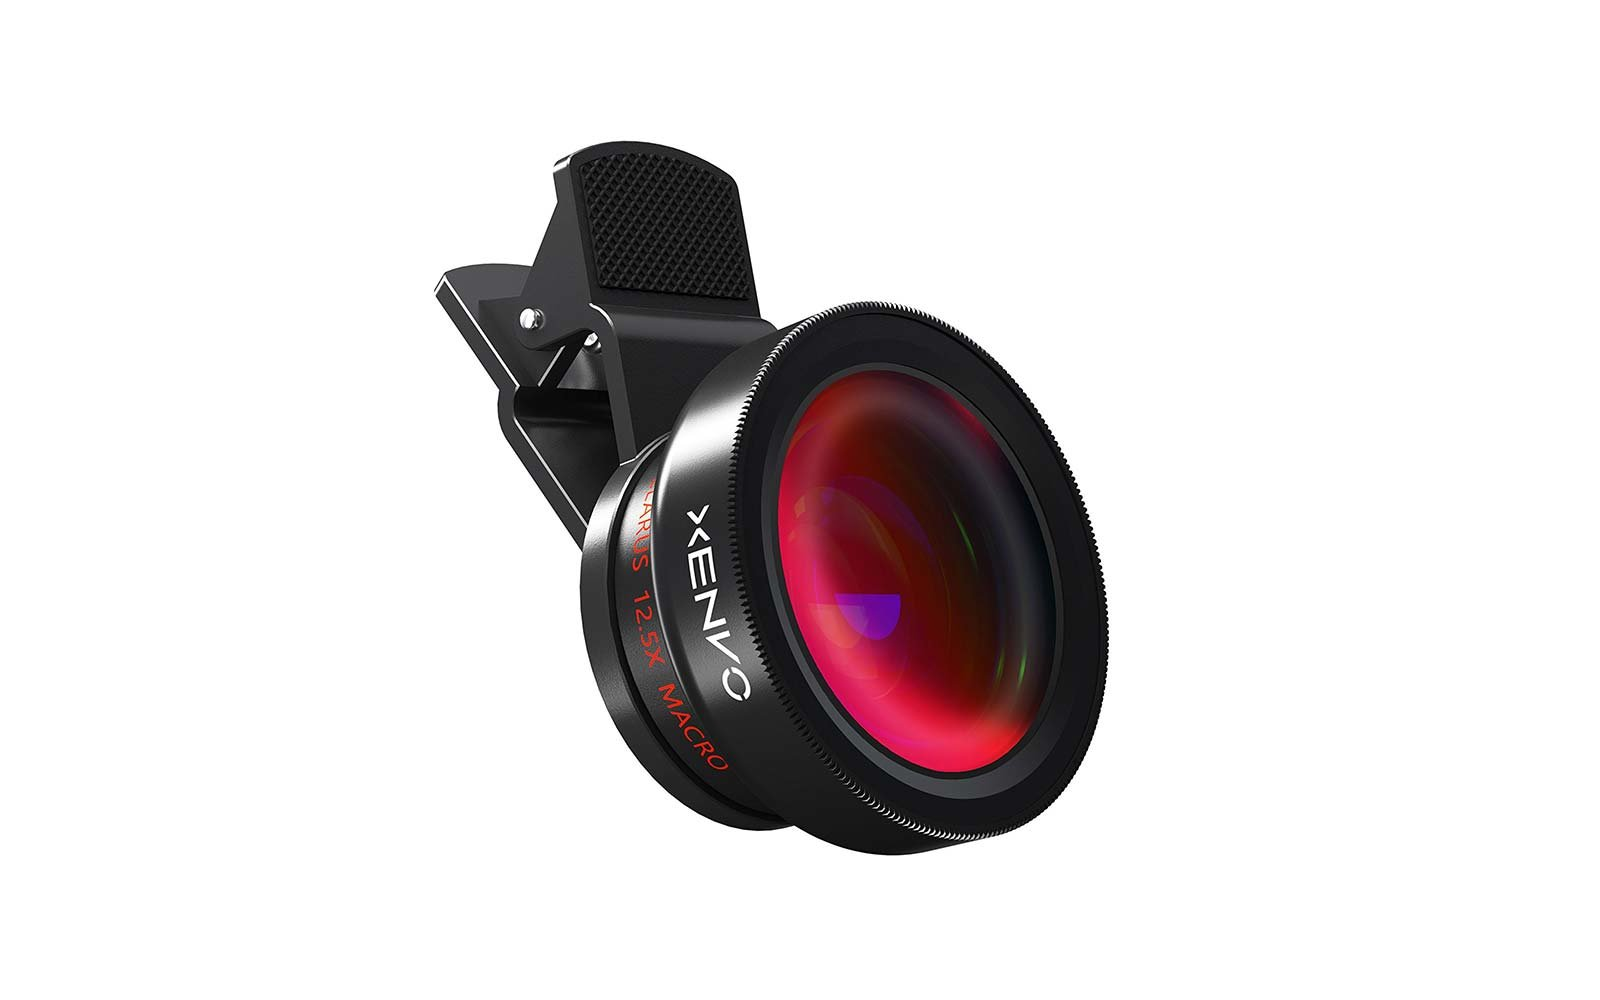 Canon Digital Camera Lenses & Flashes | Canon Online Store